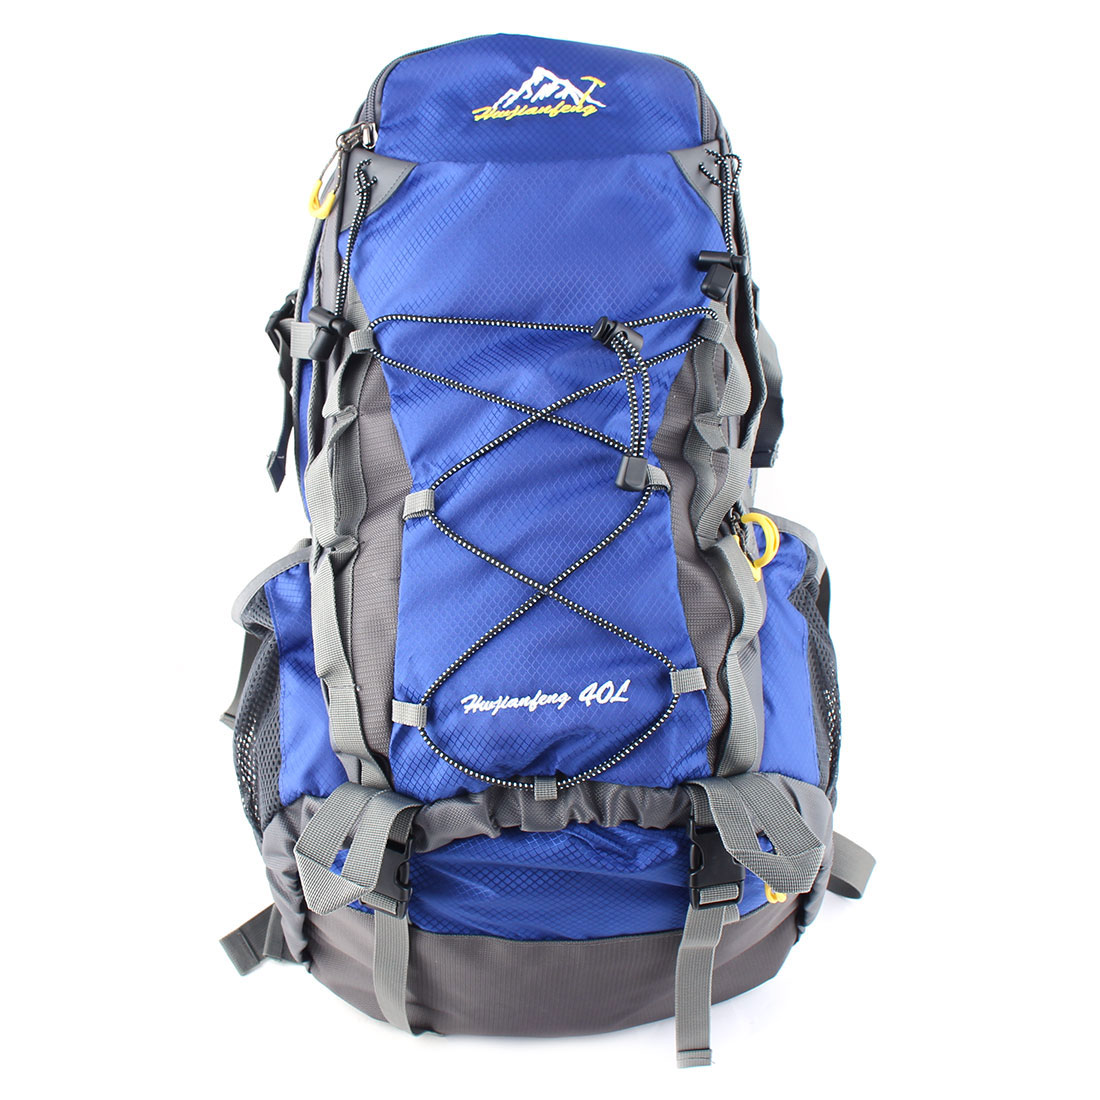 HWJIANFENG Authorized Outdoor Travel Trekking Climbing Mountaineering Pack Water Resistant Lightweight Sport Bag Hiking Backpack Daypack Blue 40L